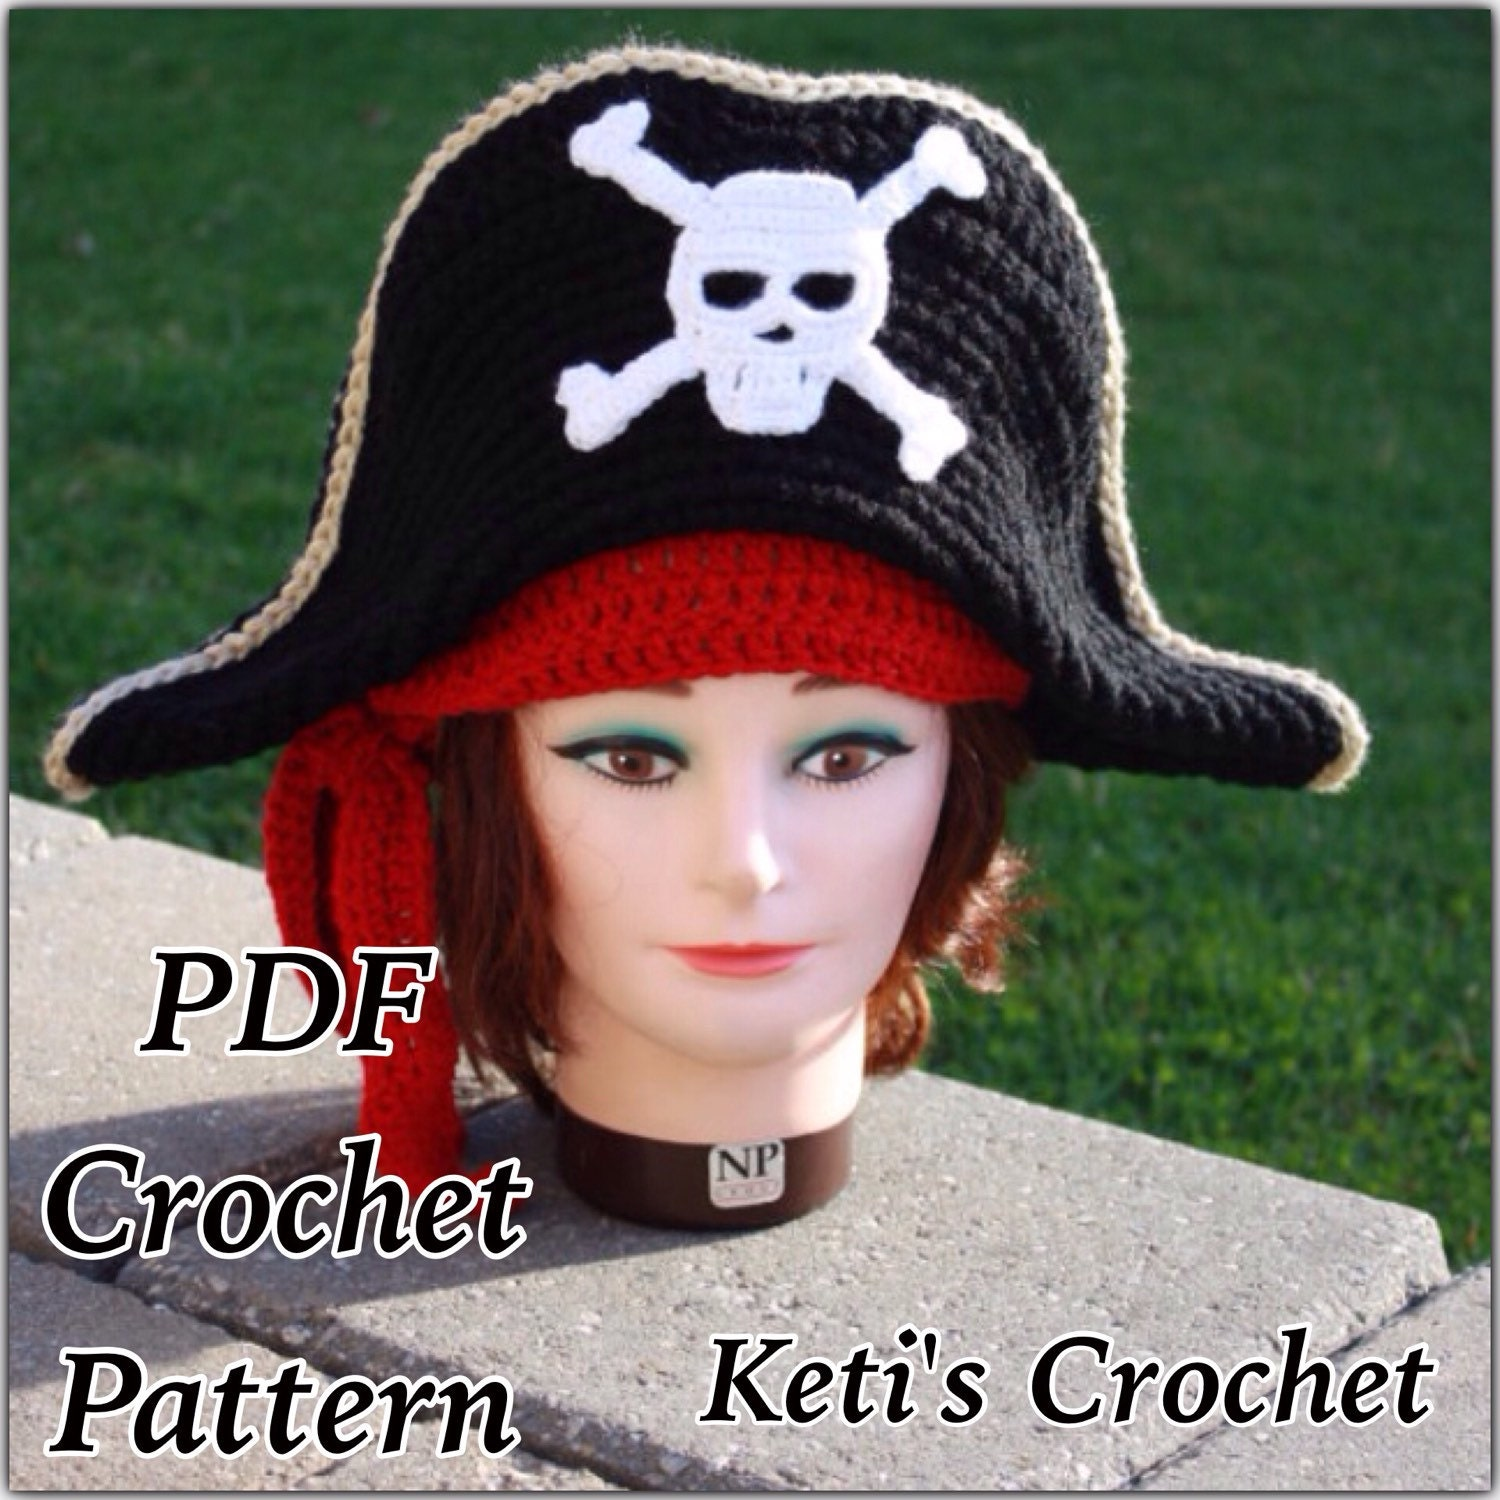 Crochet patternadult pirate hatpirate hat crochet pattern crochet patternadult pirate hatpirate hat crochet patterncrochet hat patternpirate costume crochet patternhalloween costumepirate hat bankloansurffo Image collections